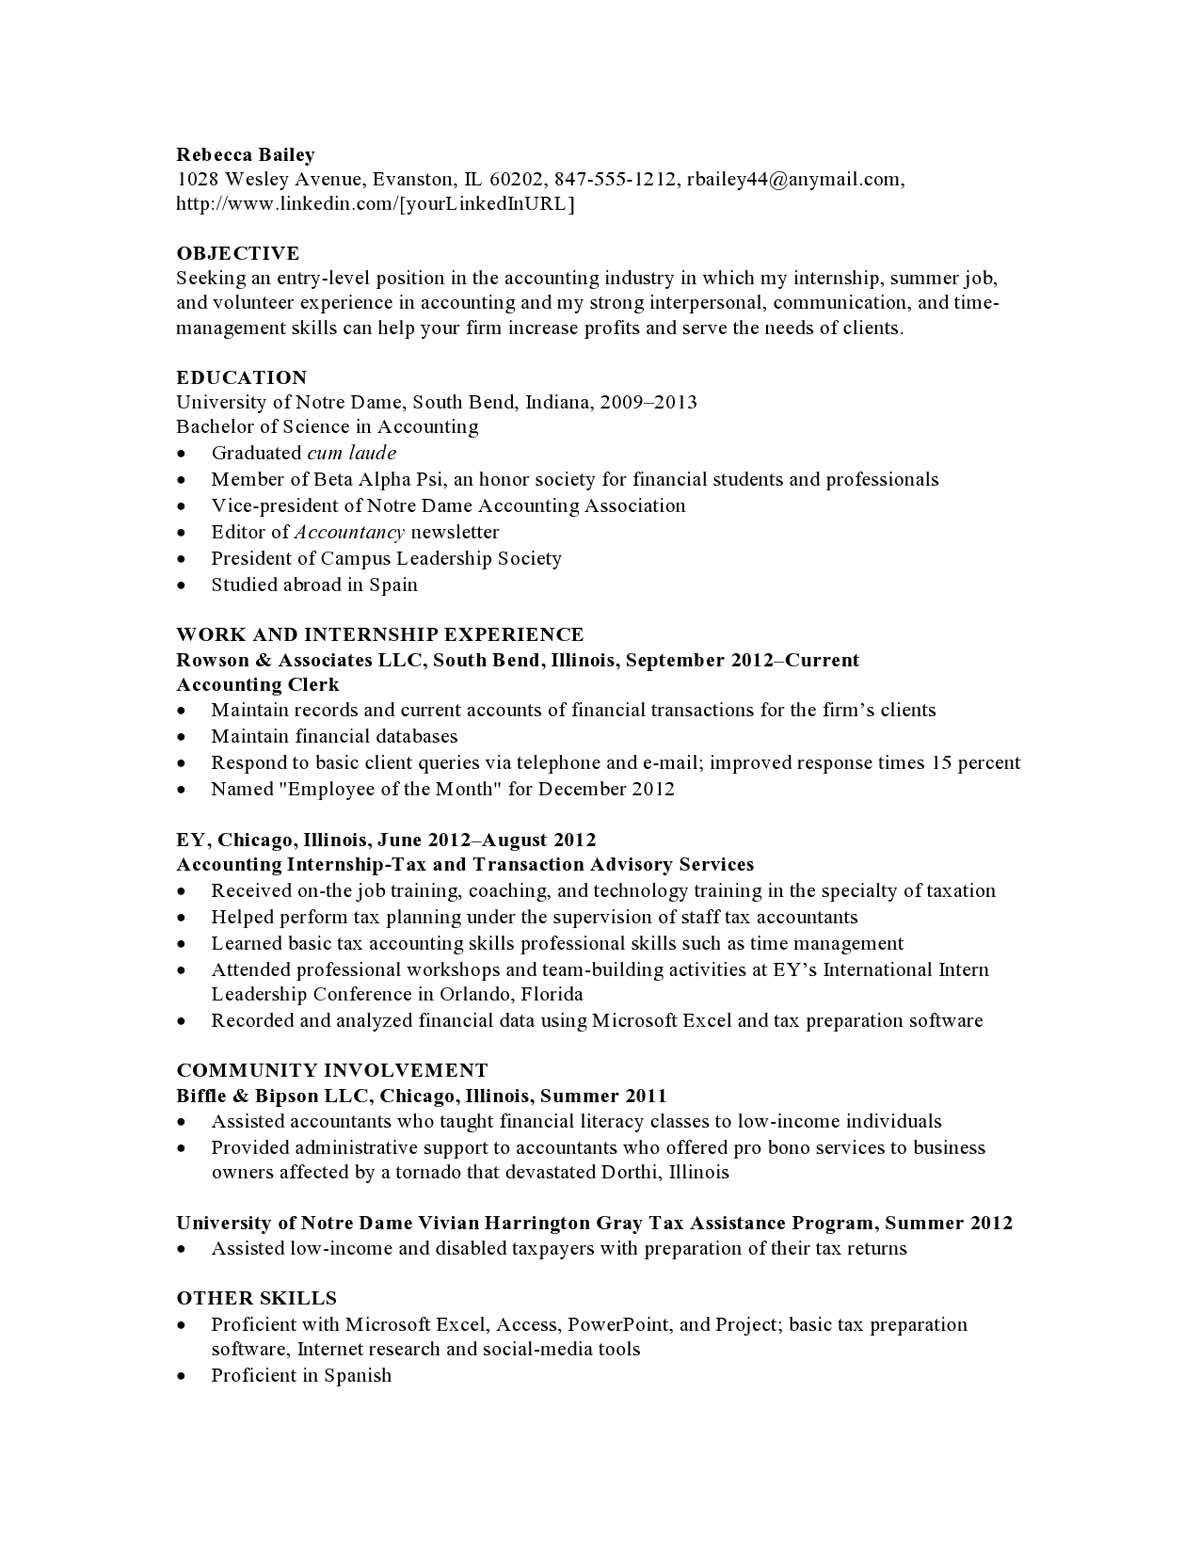 resume samples templates examples vault forestry example crescoact19 graphic designer Resume Forestry Resume Example